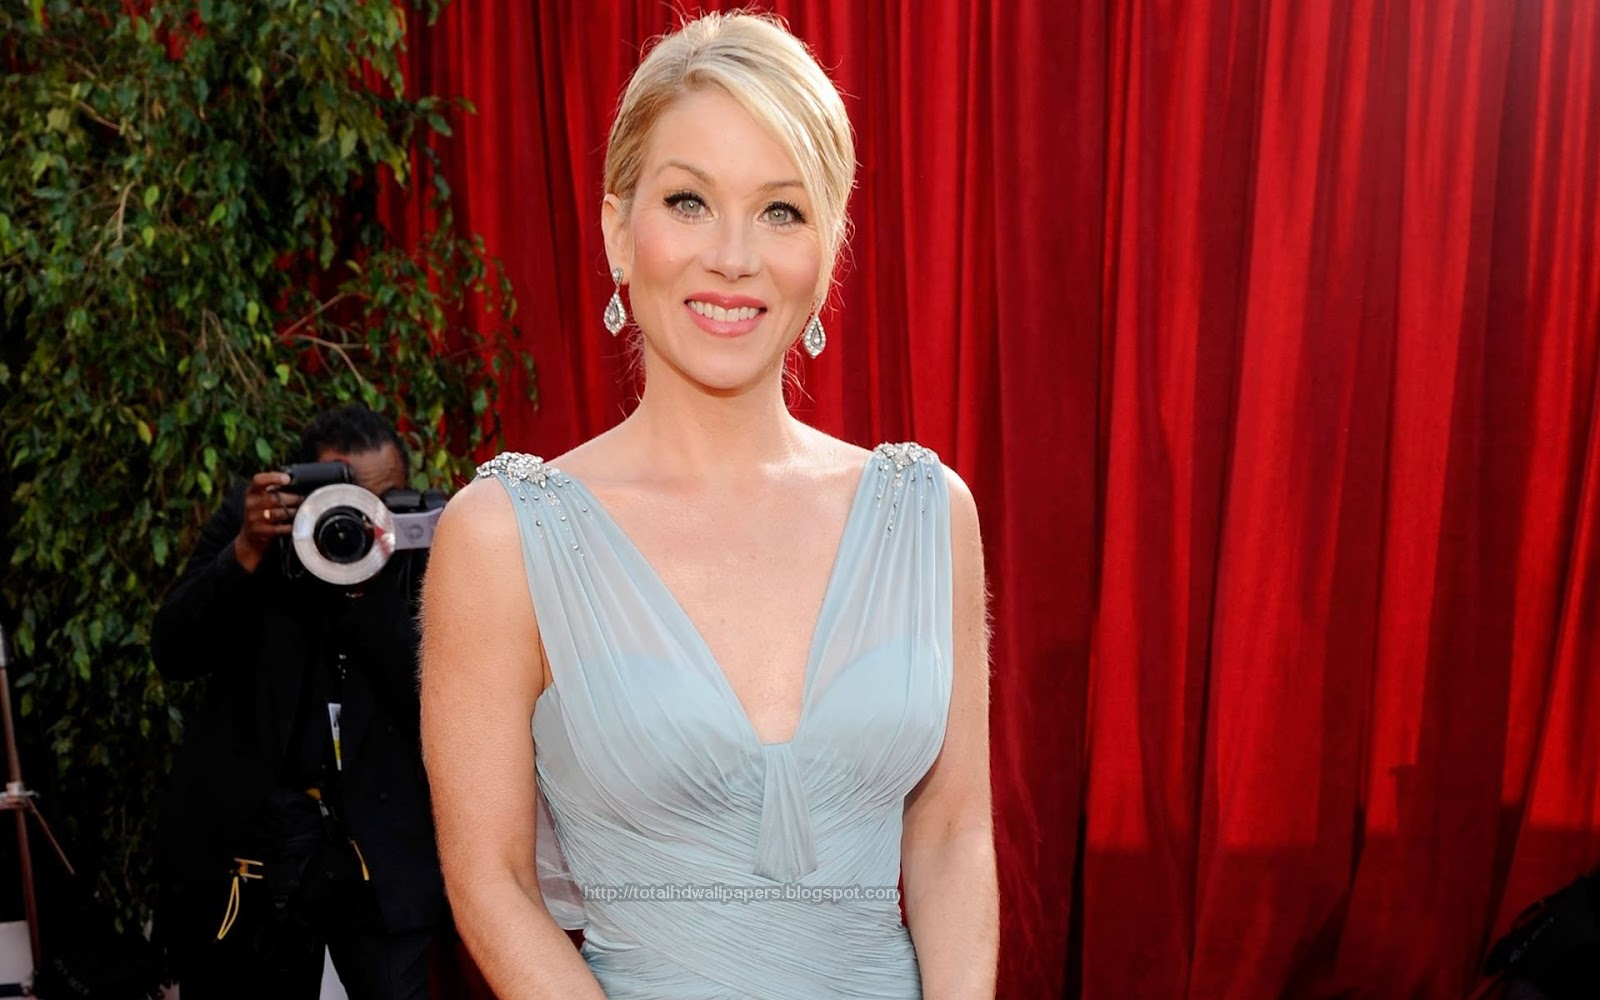 Wallpapers Hollywood Actress HD Wallpapers Christina Applegate HD 1600x1000